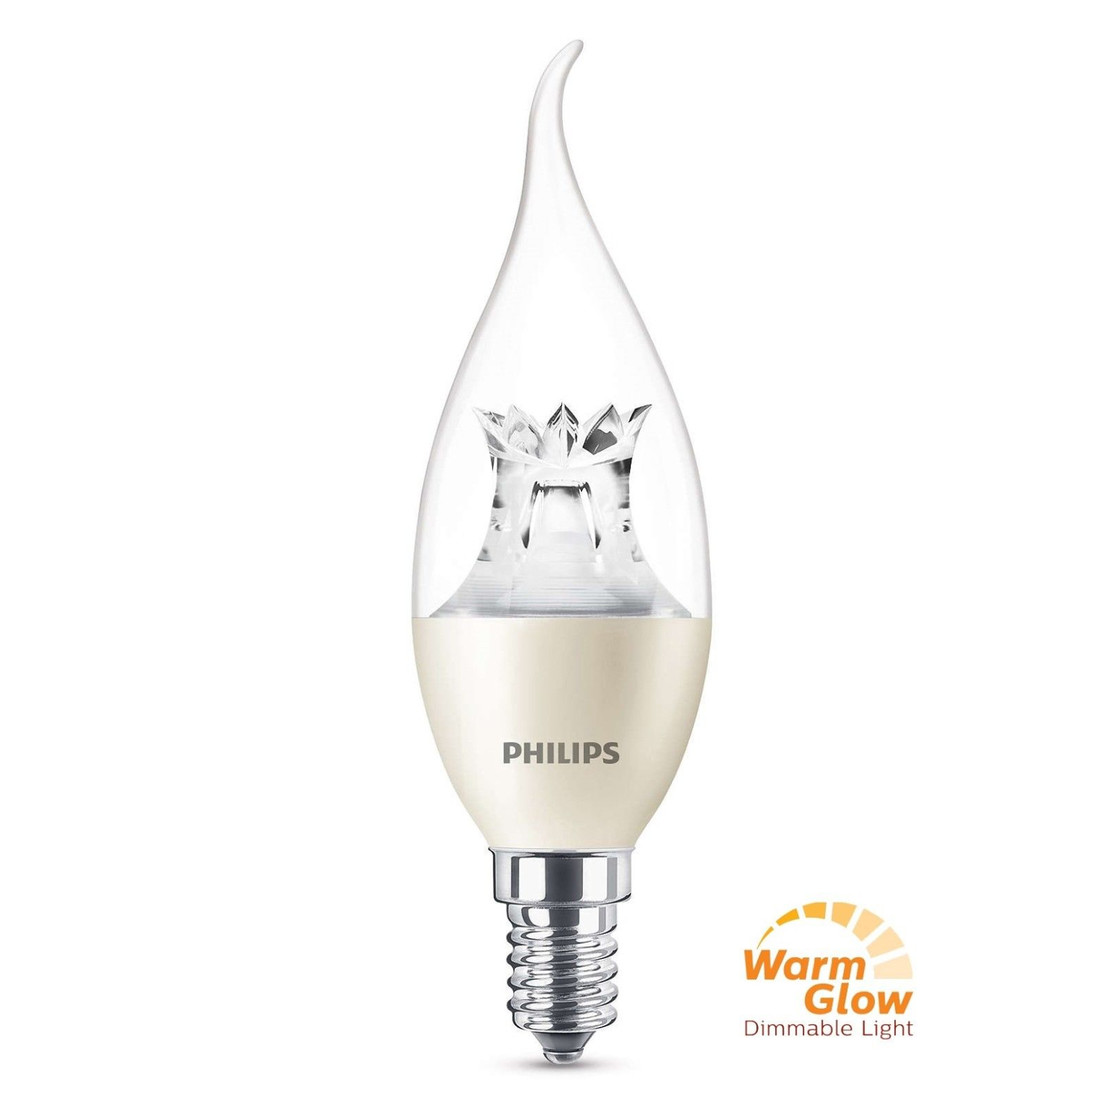 philips led e14 filament windsto kerze lampe 4w 25w warmwei dimmb 4 99. Black Bedroom Furniture Sets. Home Design Ideas